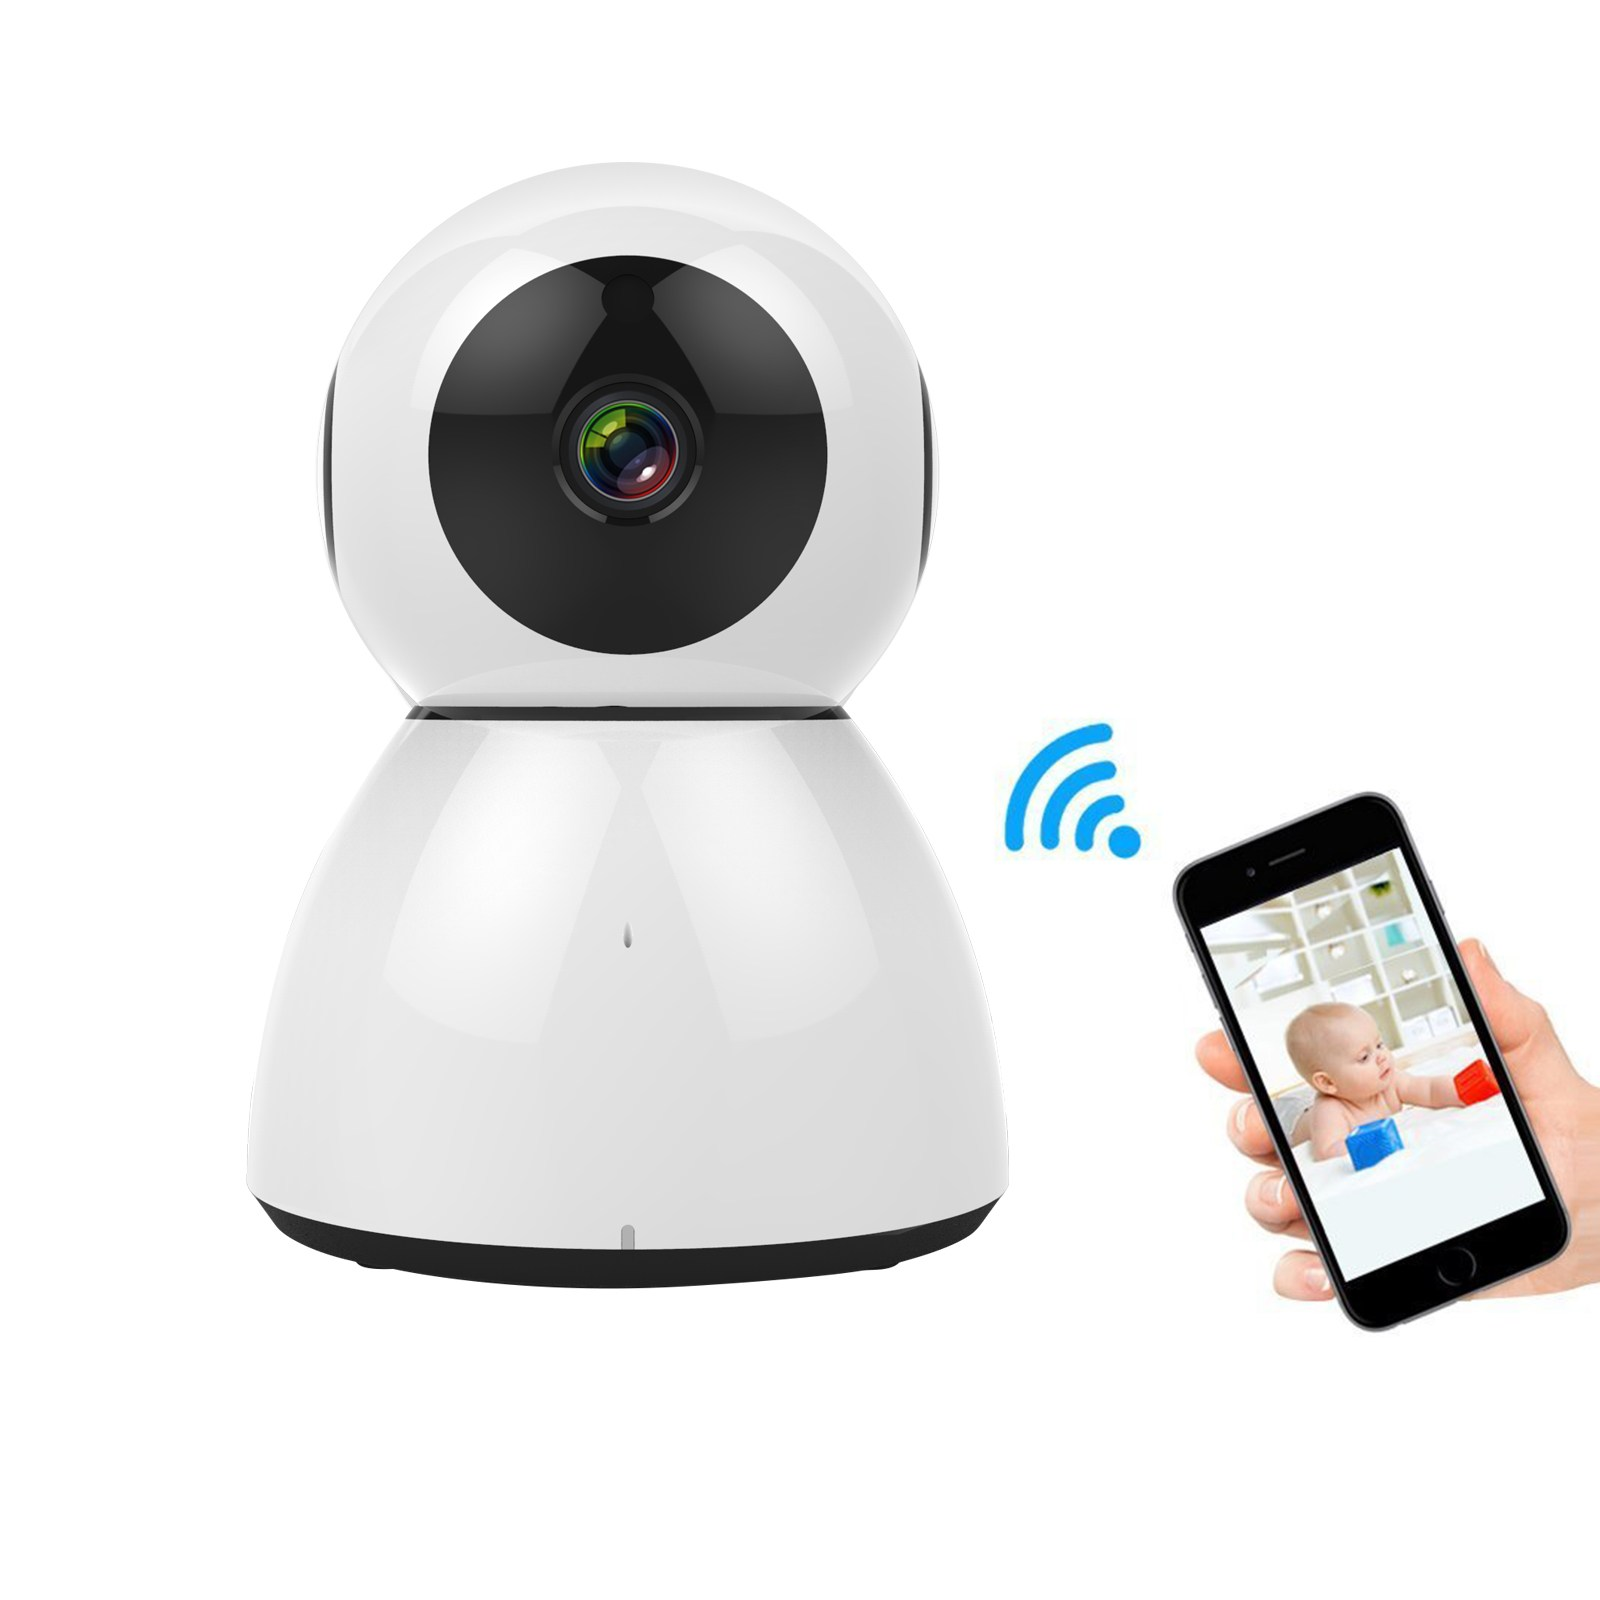 NEW Wireless WiFi Home Security Camera 1080P 3.6mm IP Camera Support Cloud Storage Two-Way Audio Night Vision<br>